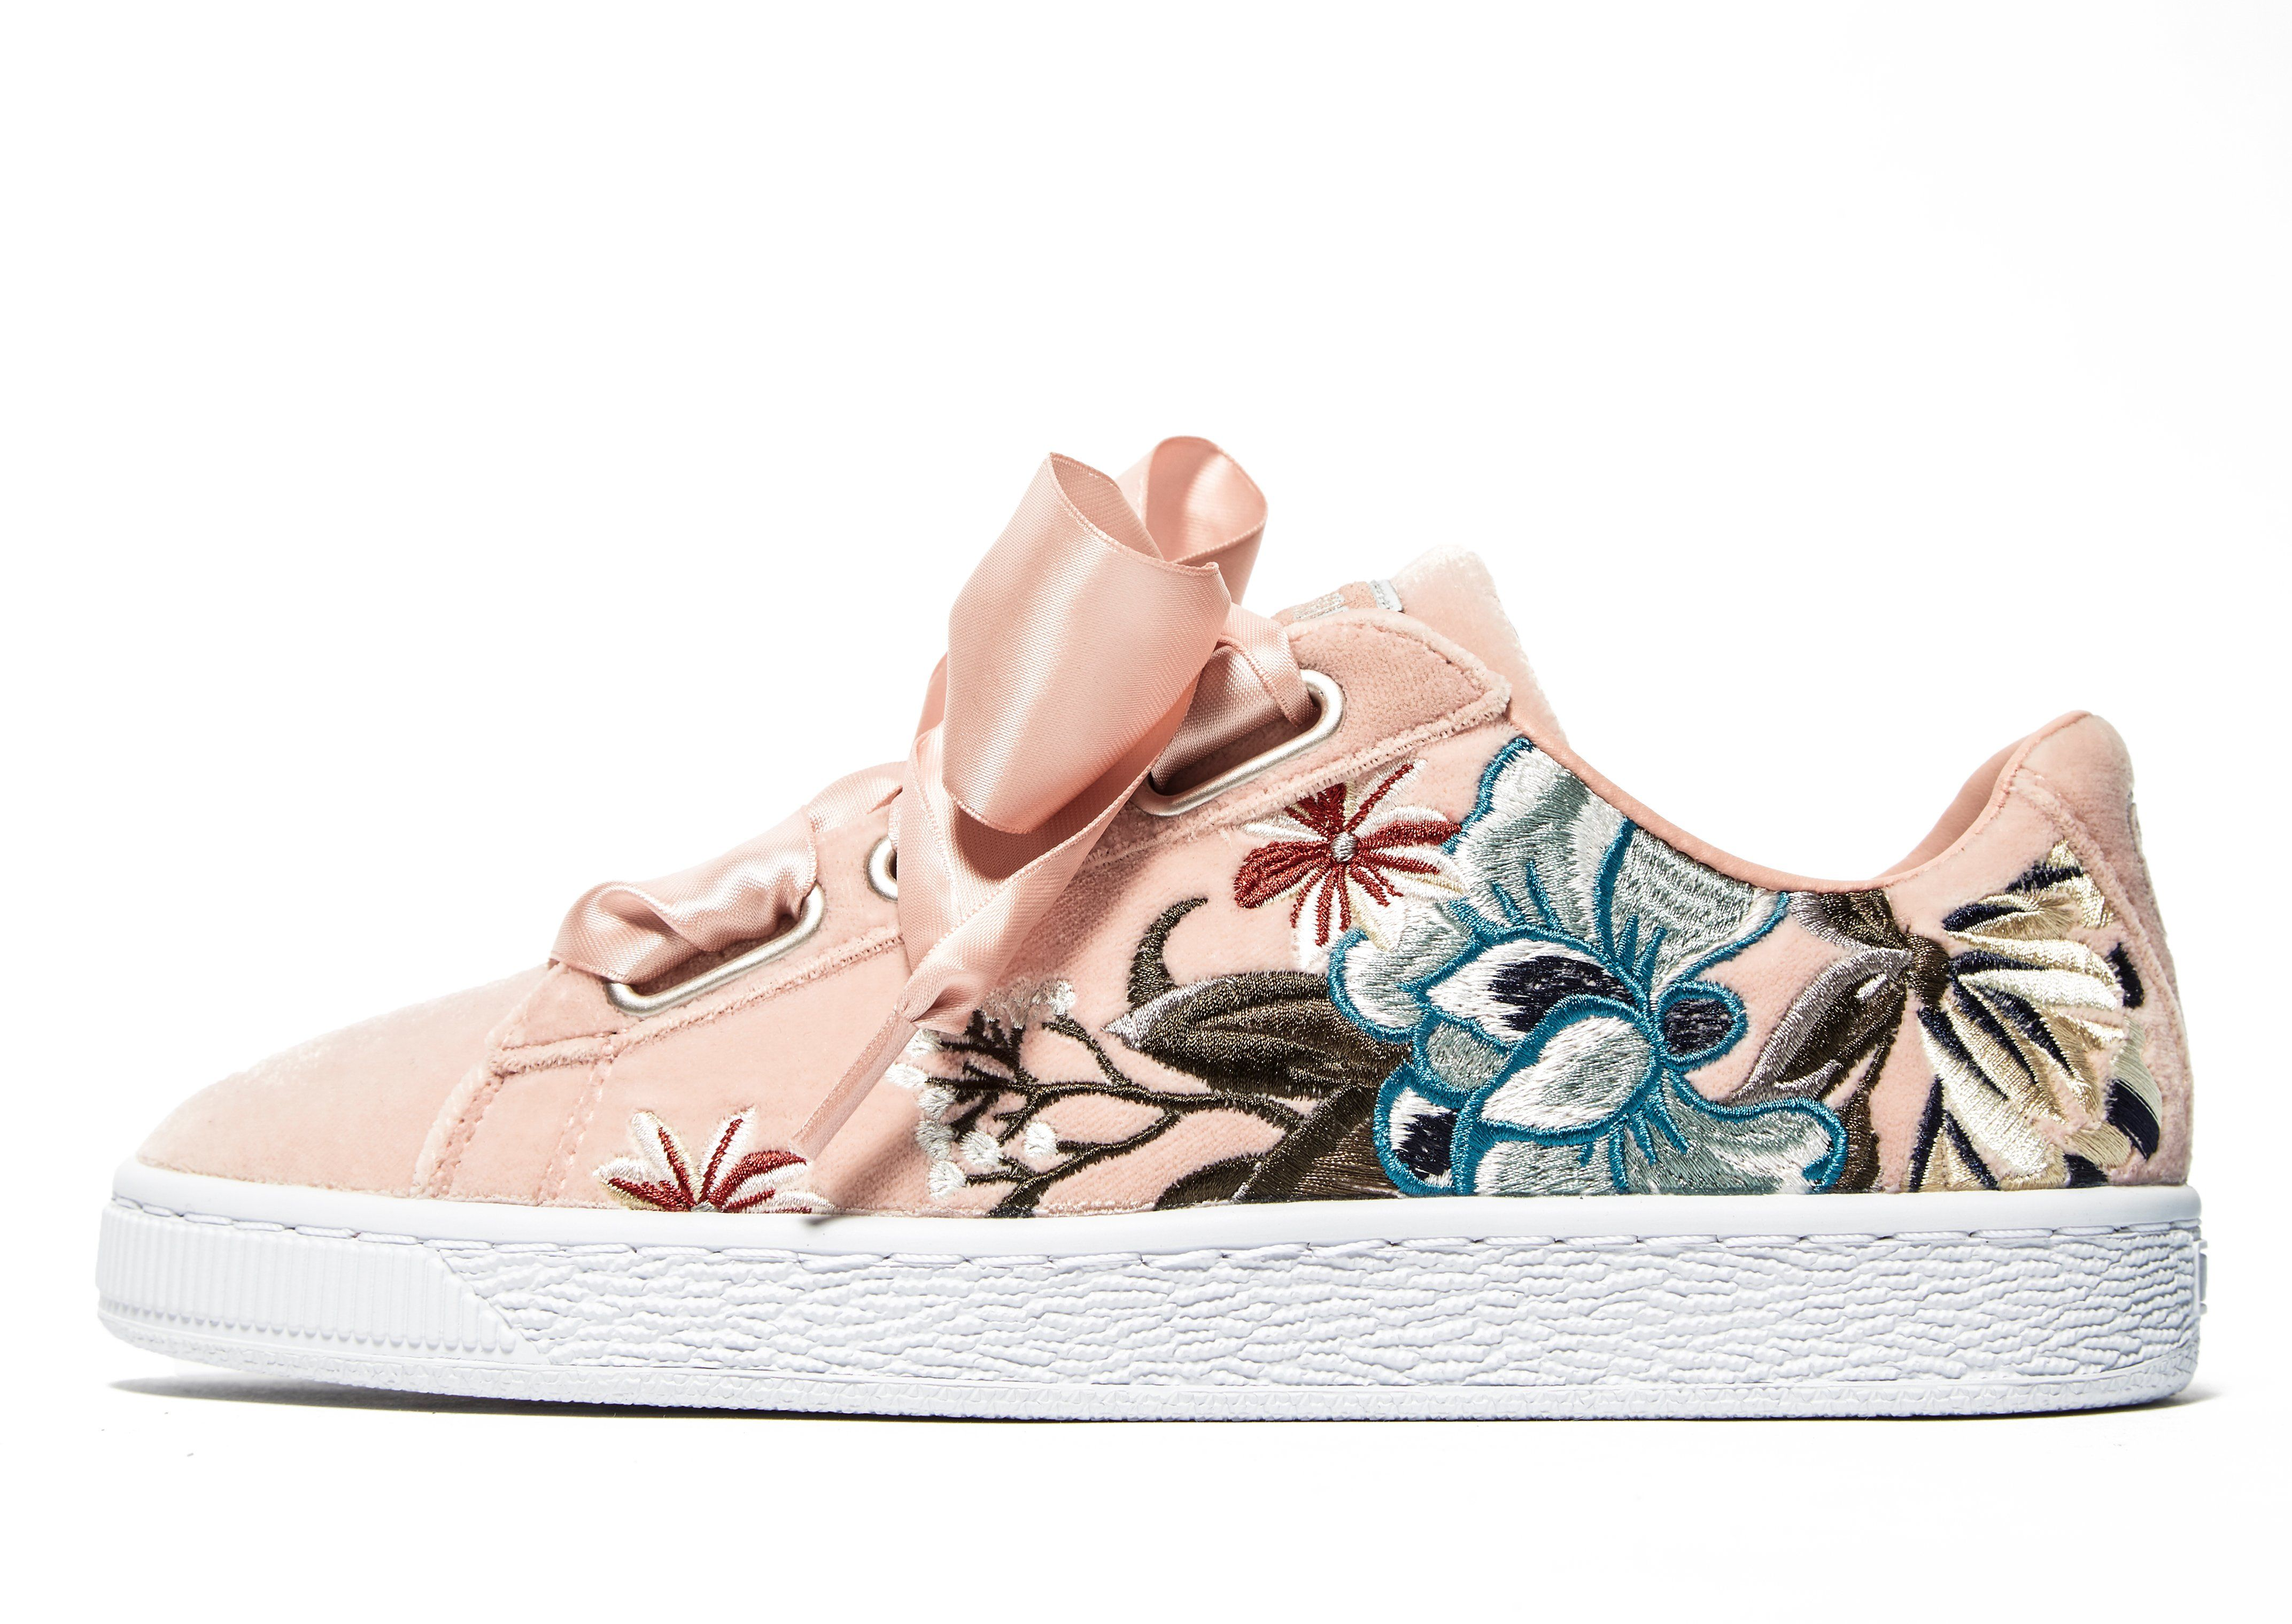 00be281e681 PUMA Basket Heart Embroidered Women s